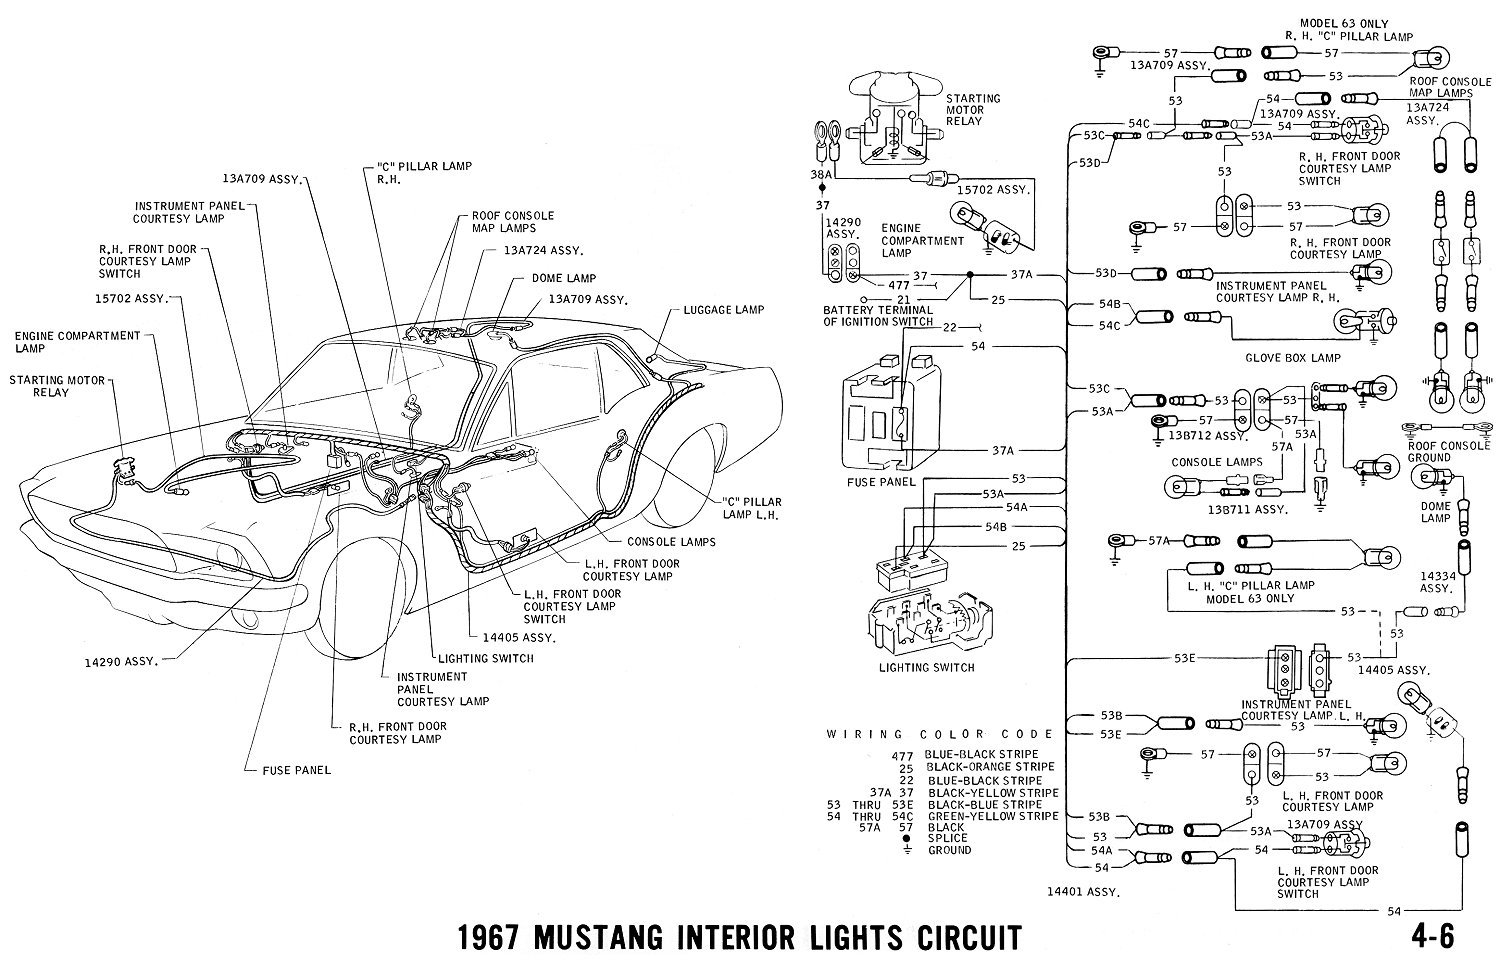 Mustang Wiring Diagrams Simple Guide About Diagram 2011 Chevy Camaro Radio 68 Underdash Looking At The 2015